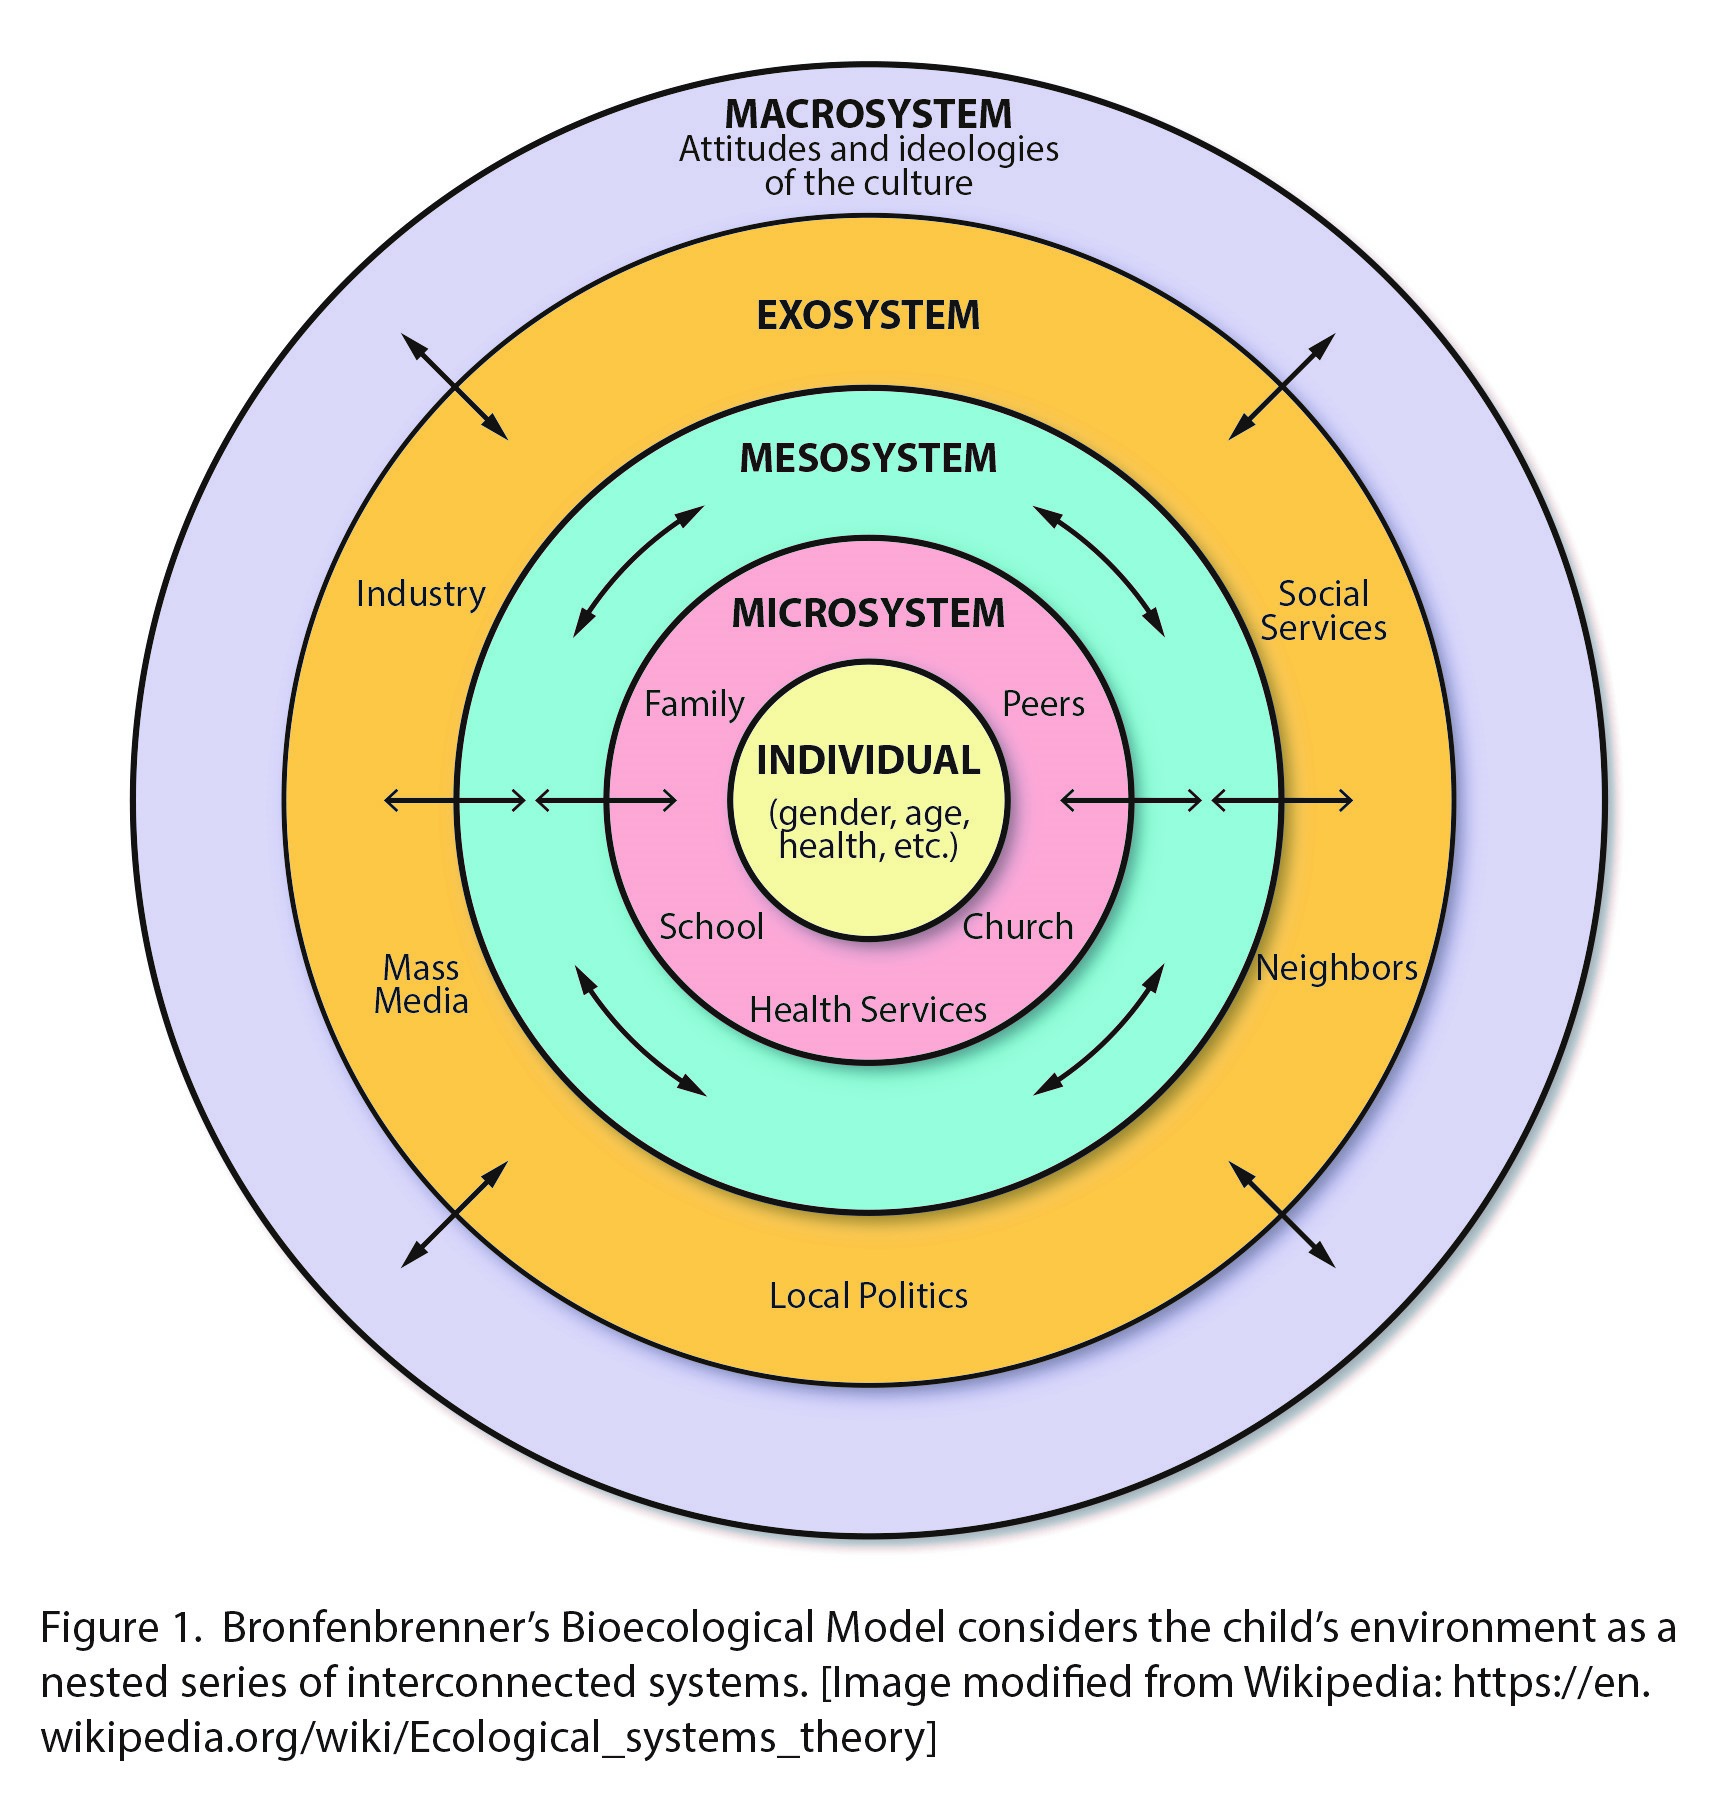 This is a diagram of Bronfrenbrenner's Bioecological Model which considers the child's environment as a nested series of interconnected systems. The diagram shows a circle with a series of 5 nested layers within it. On the outer most ridge is the Macrosystem which includes attitudes and ideologies of the culture. The next layer towards the center is the Exosystem. This includes social services, neighbours, local politics, mass media, and industry. The next layer toward the center is called the Mesosystem. The mesosystem is a layer between the exosystem and the microsystem. The next layer is the microsystem. The microsystem includes peers, church, health services, school, and family. The innermost layer, the centre of the circle, is the individual. The individual layer includes gender, age, health, etc.